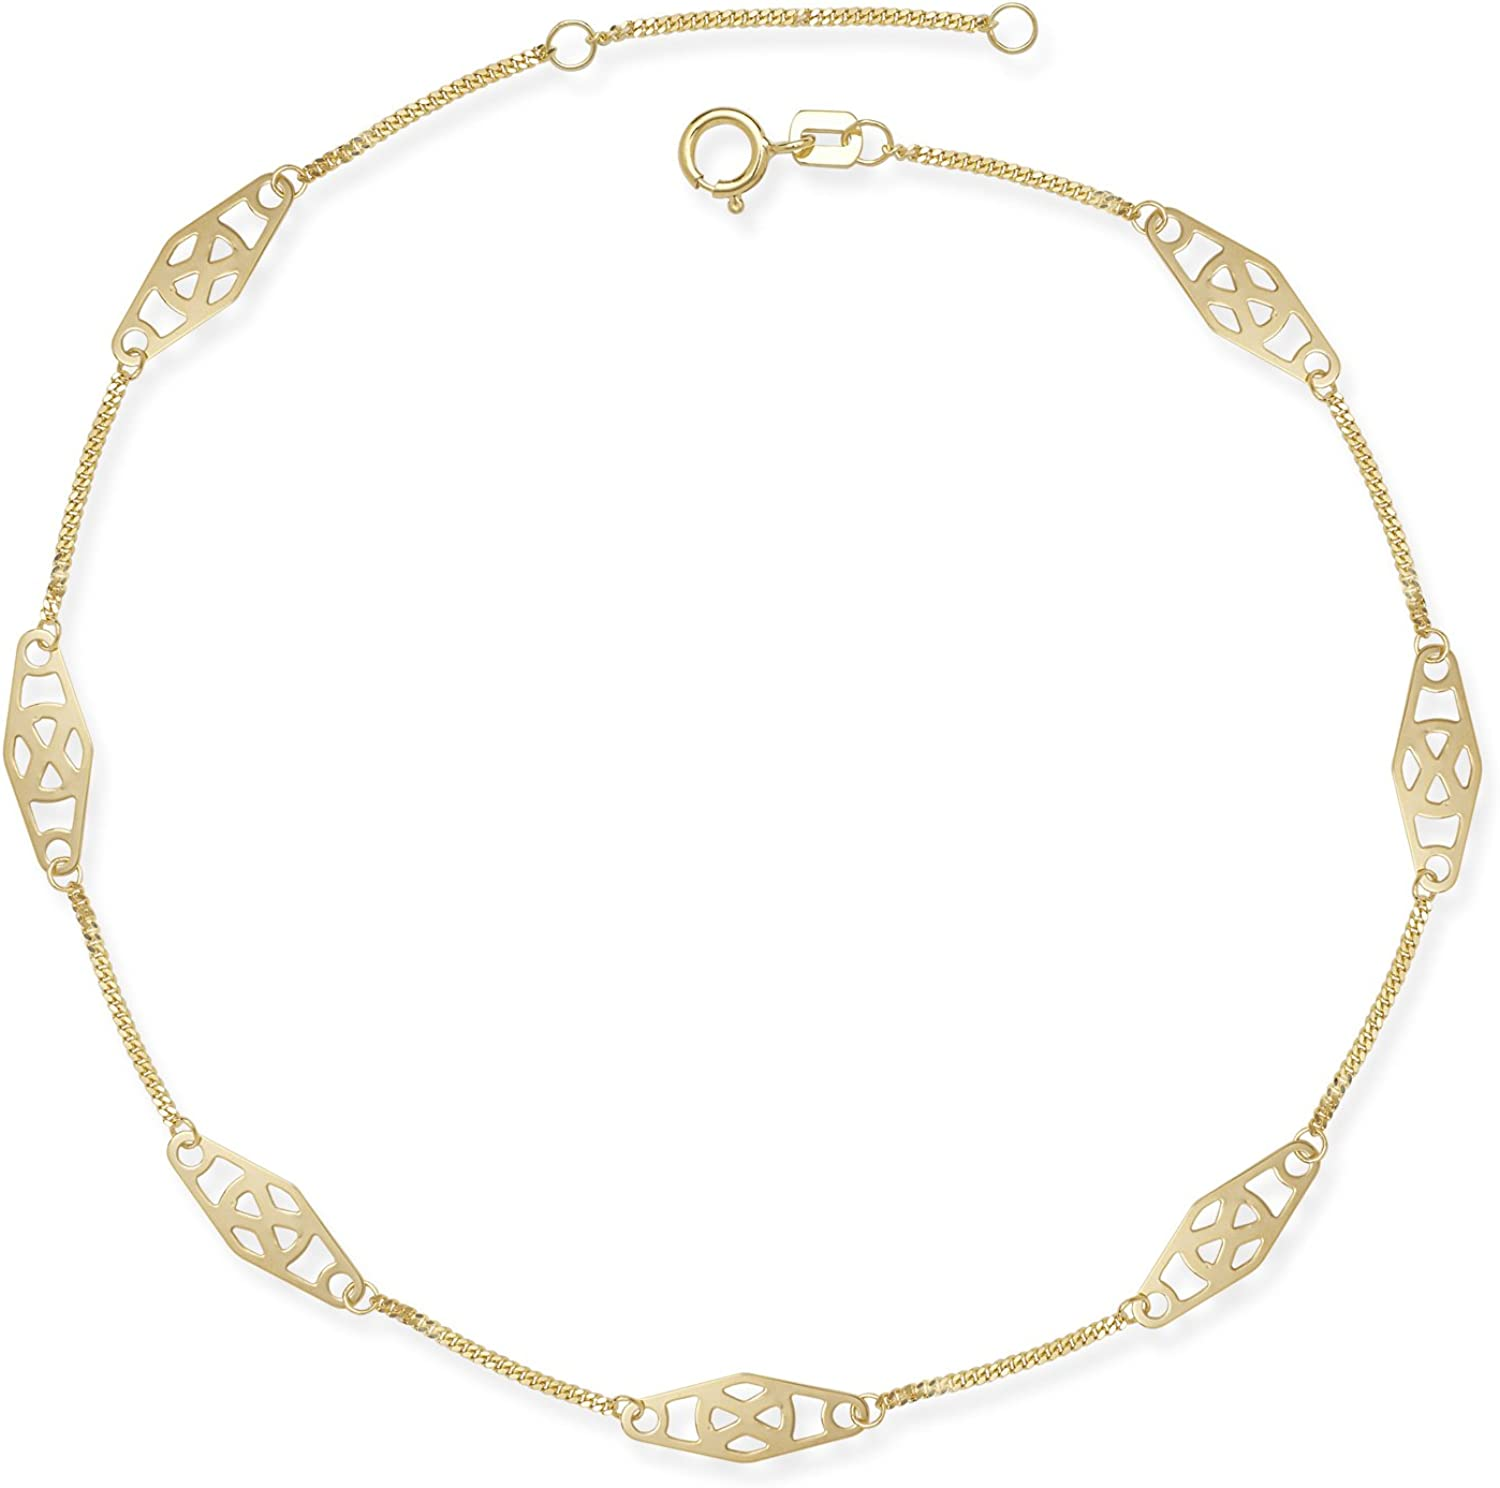 JewelryWeb 14k Gold 9-10-inch Adjustable Twisted Bar Fancy Station Anklet Yellow or White